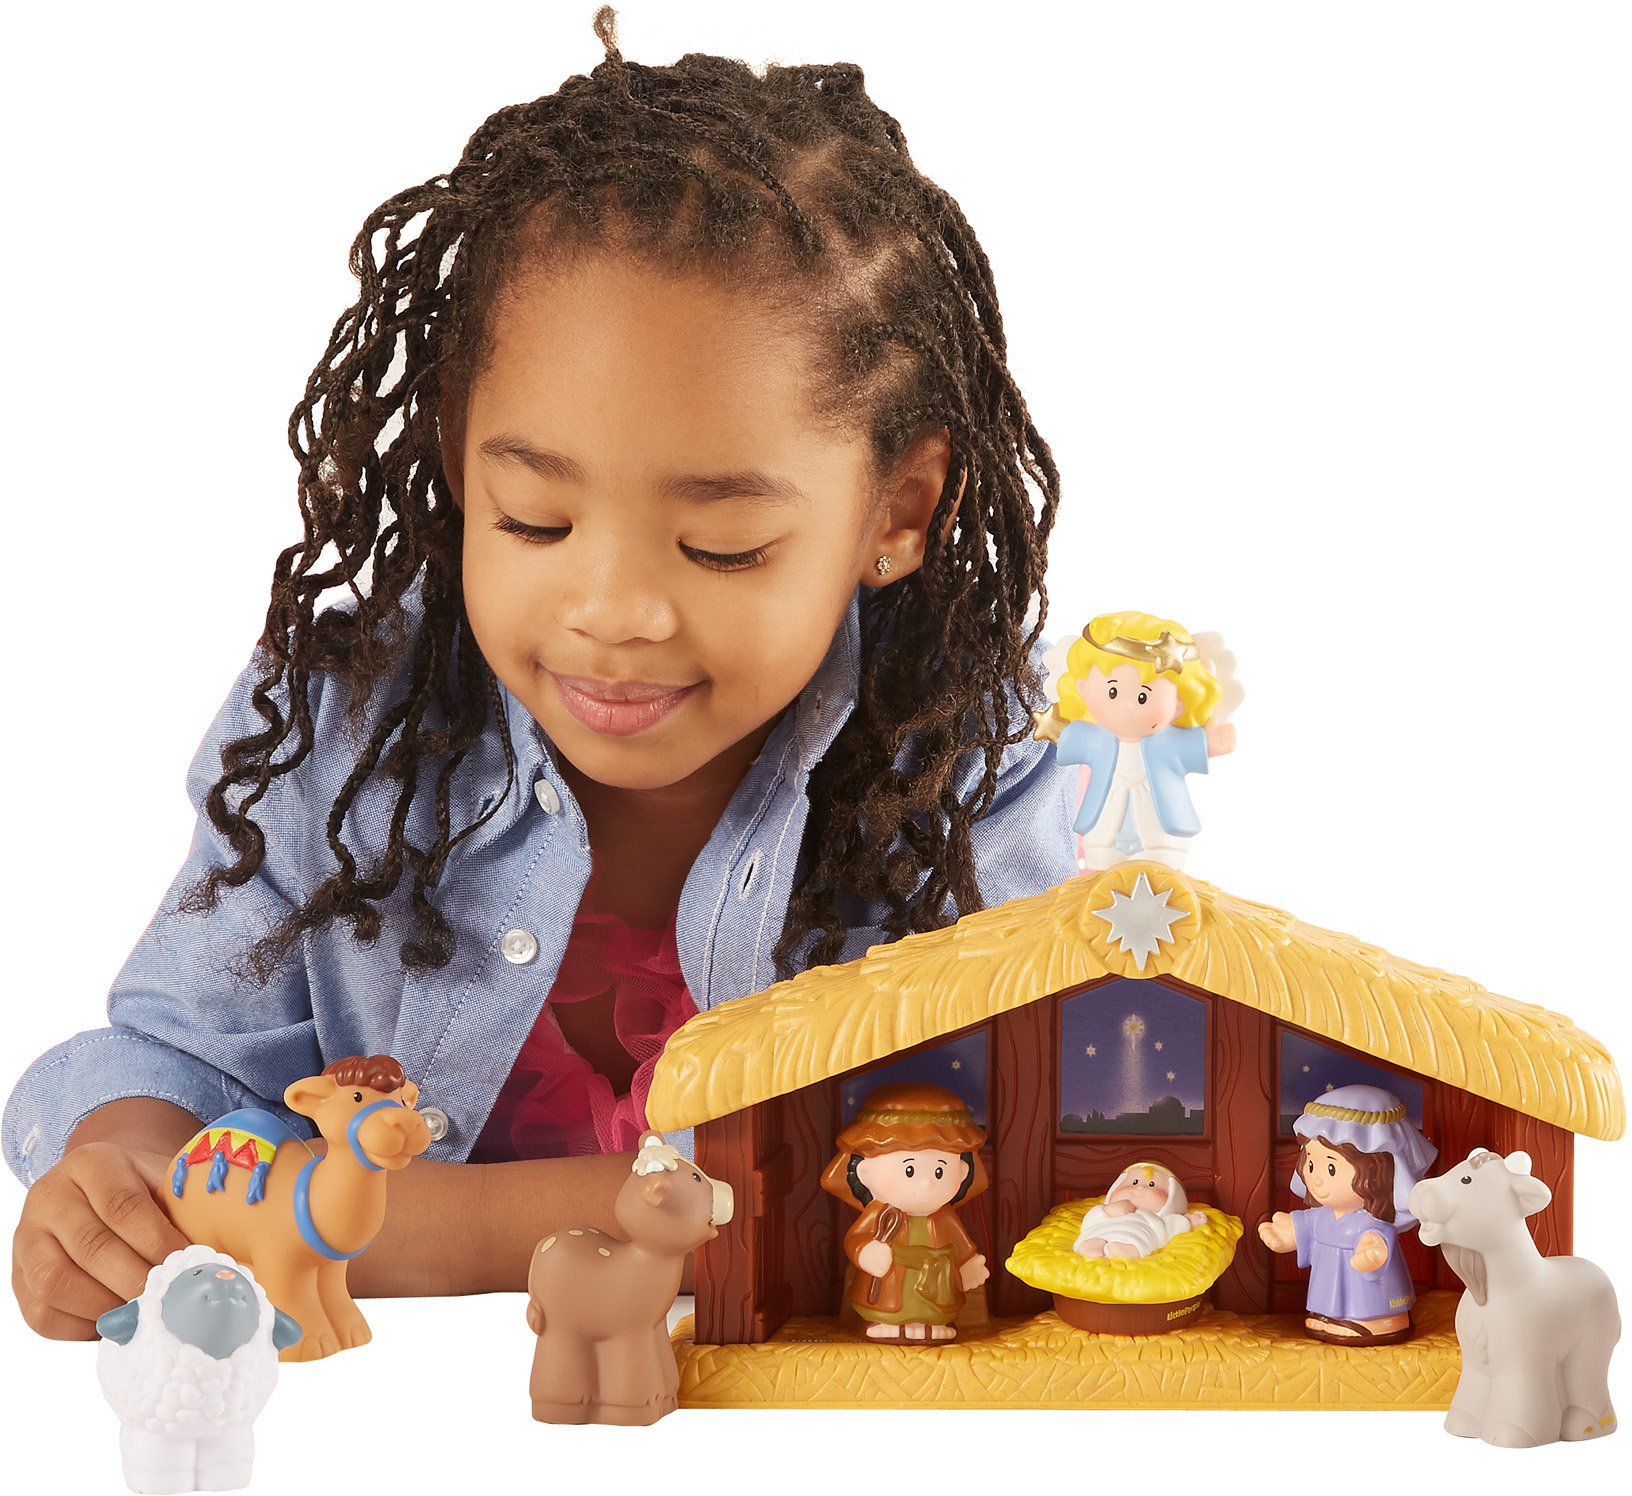 Fisher-Price Little People Nativity